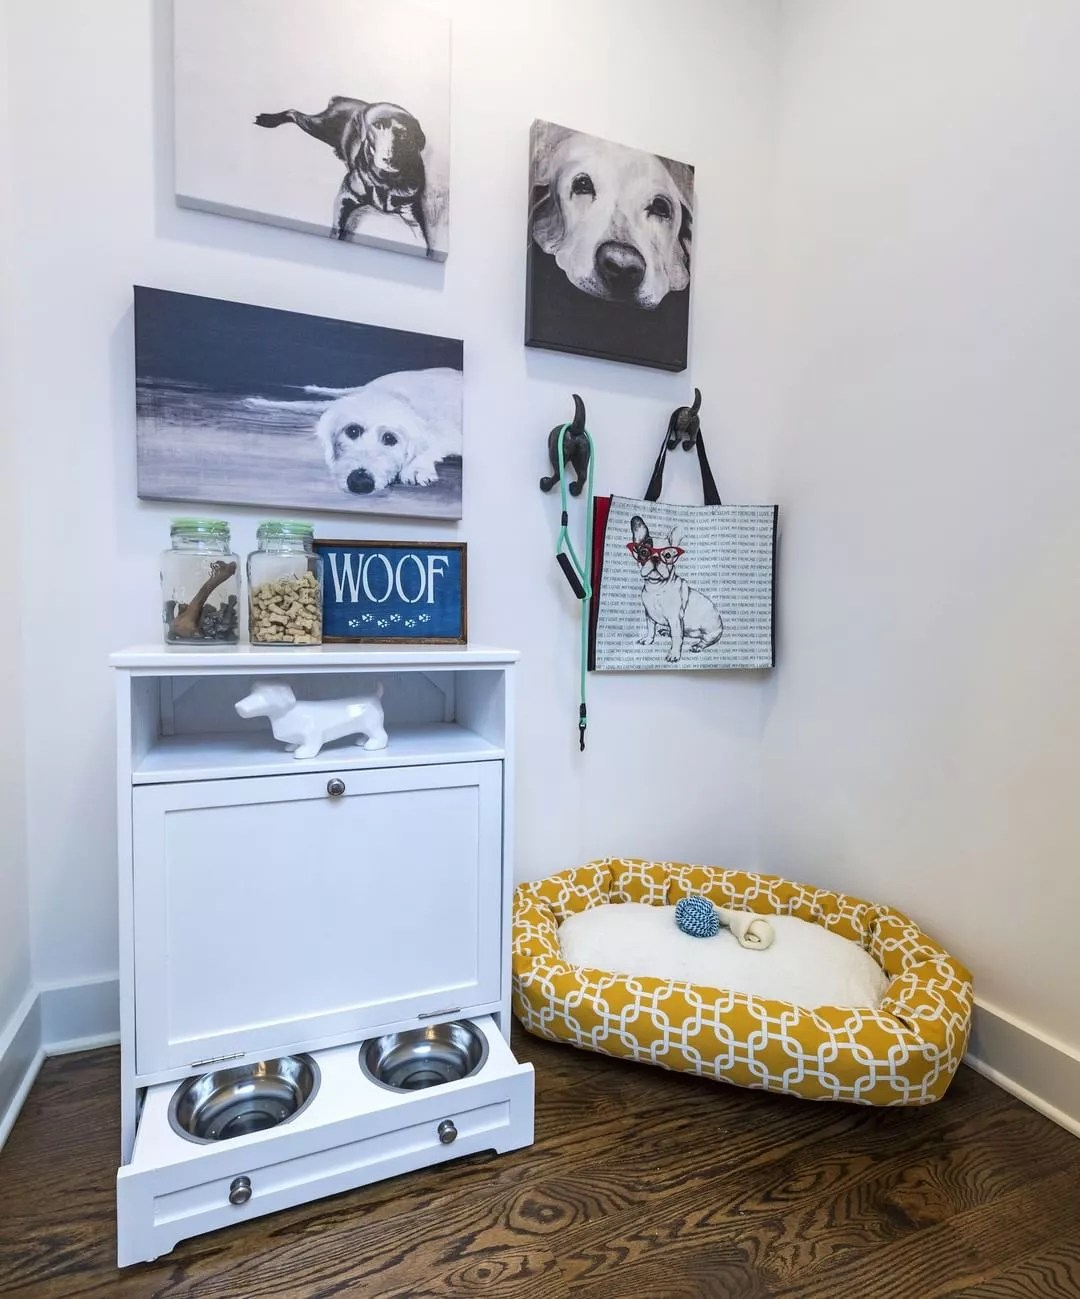 Pet Feeder Built Into Storage Unit. Photo by Instagram user @livejwcollection